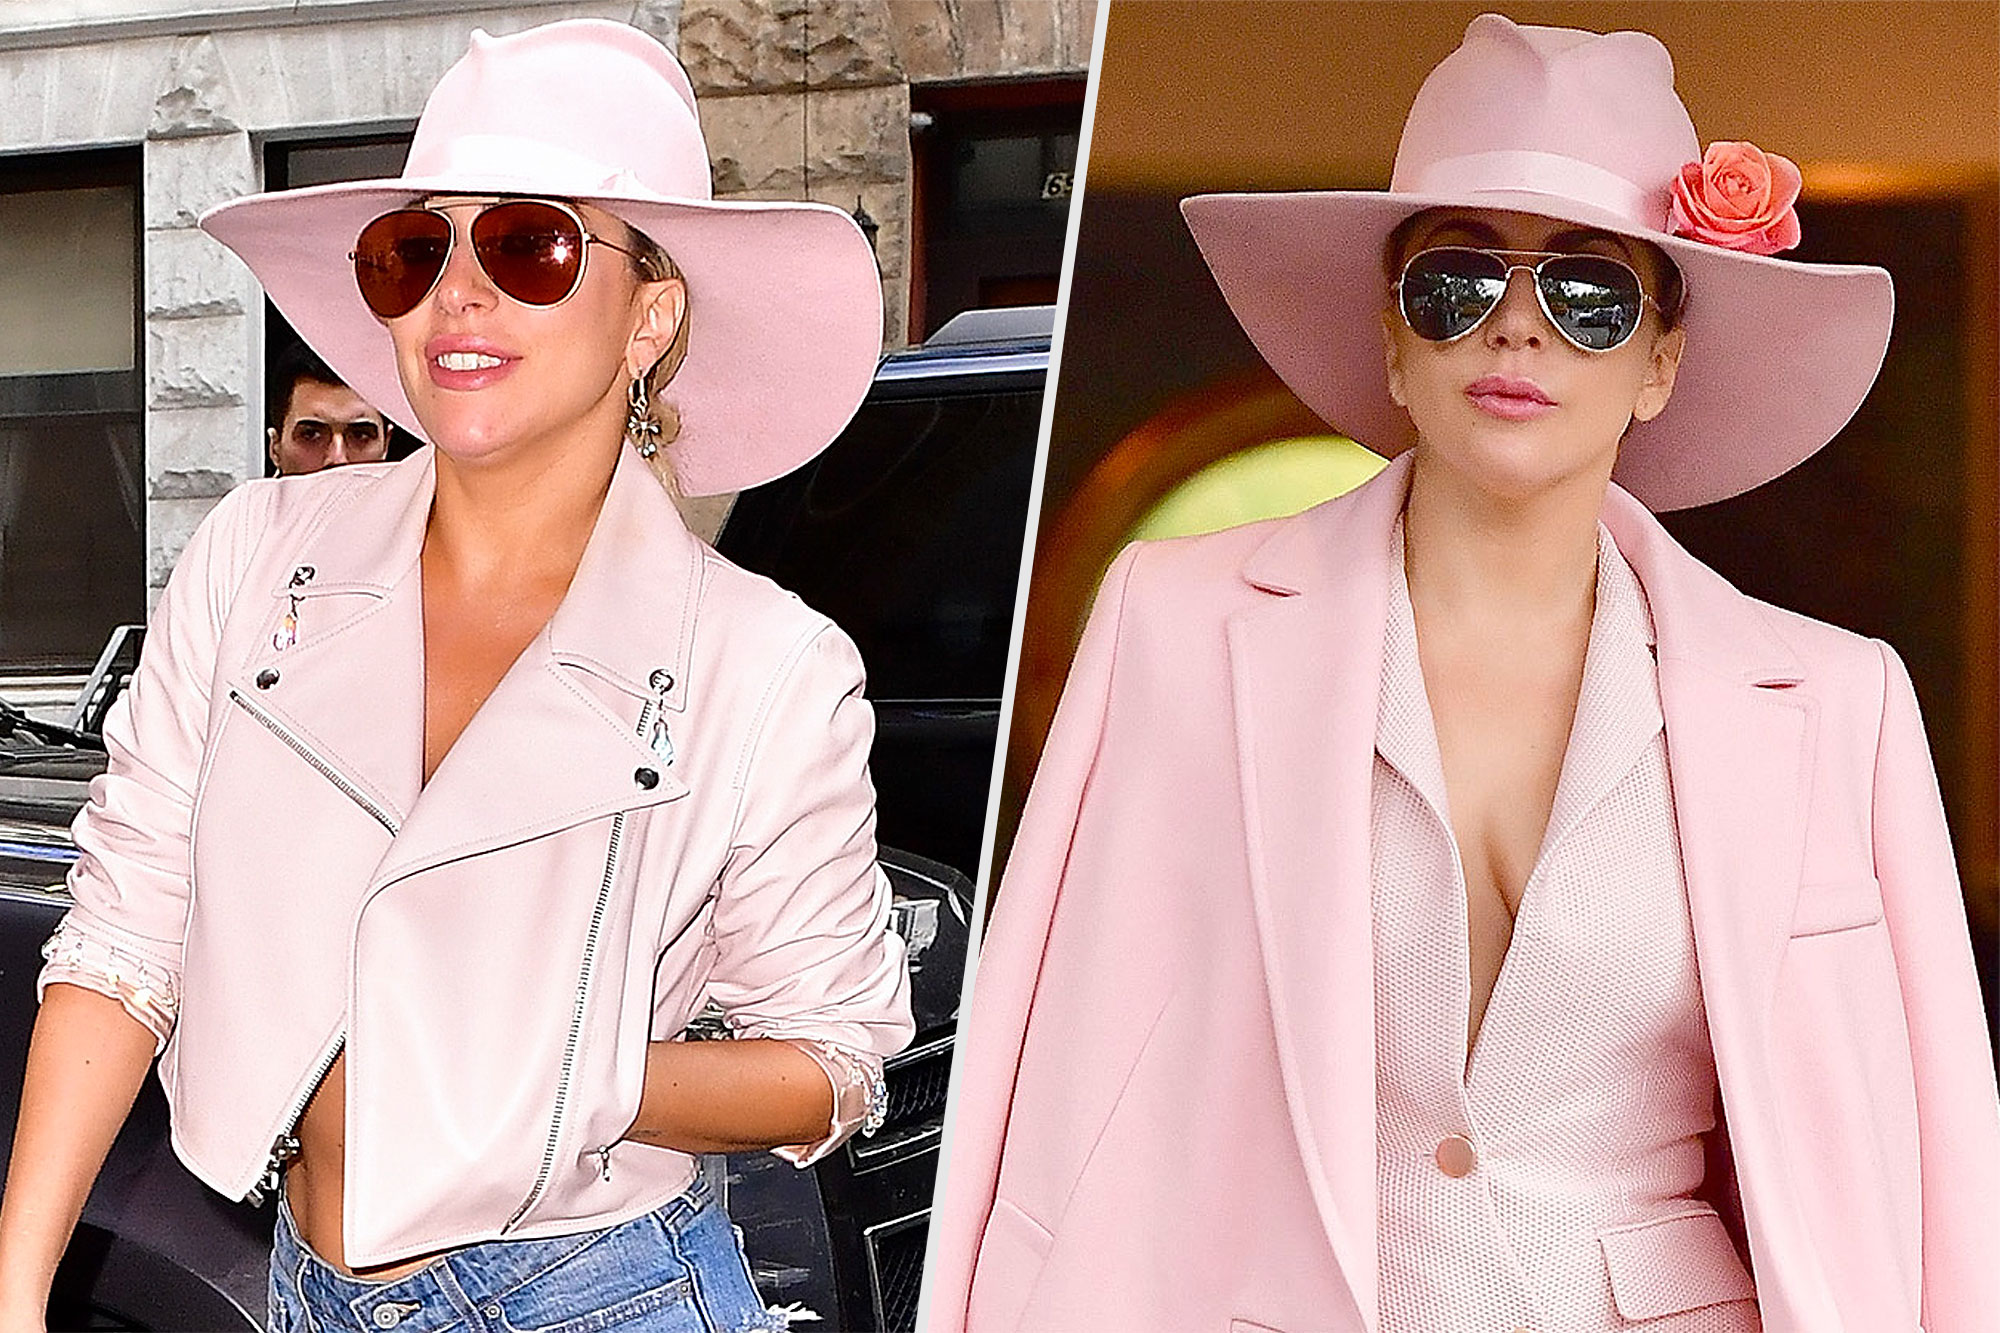 NEW YORK, NY - OCTOBER 24: Lady Gaga arrives to Joanne Trattoria restaurant on October 24, 2016 in New York City. (Photo by James Devaney/GC Images) NEW YORK, NY - OCTOBER 21: Lady Gaga seen on the streets of Manhattan on October 21, 2016 in New York City. (Photo by James Devaney/GC Images)